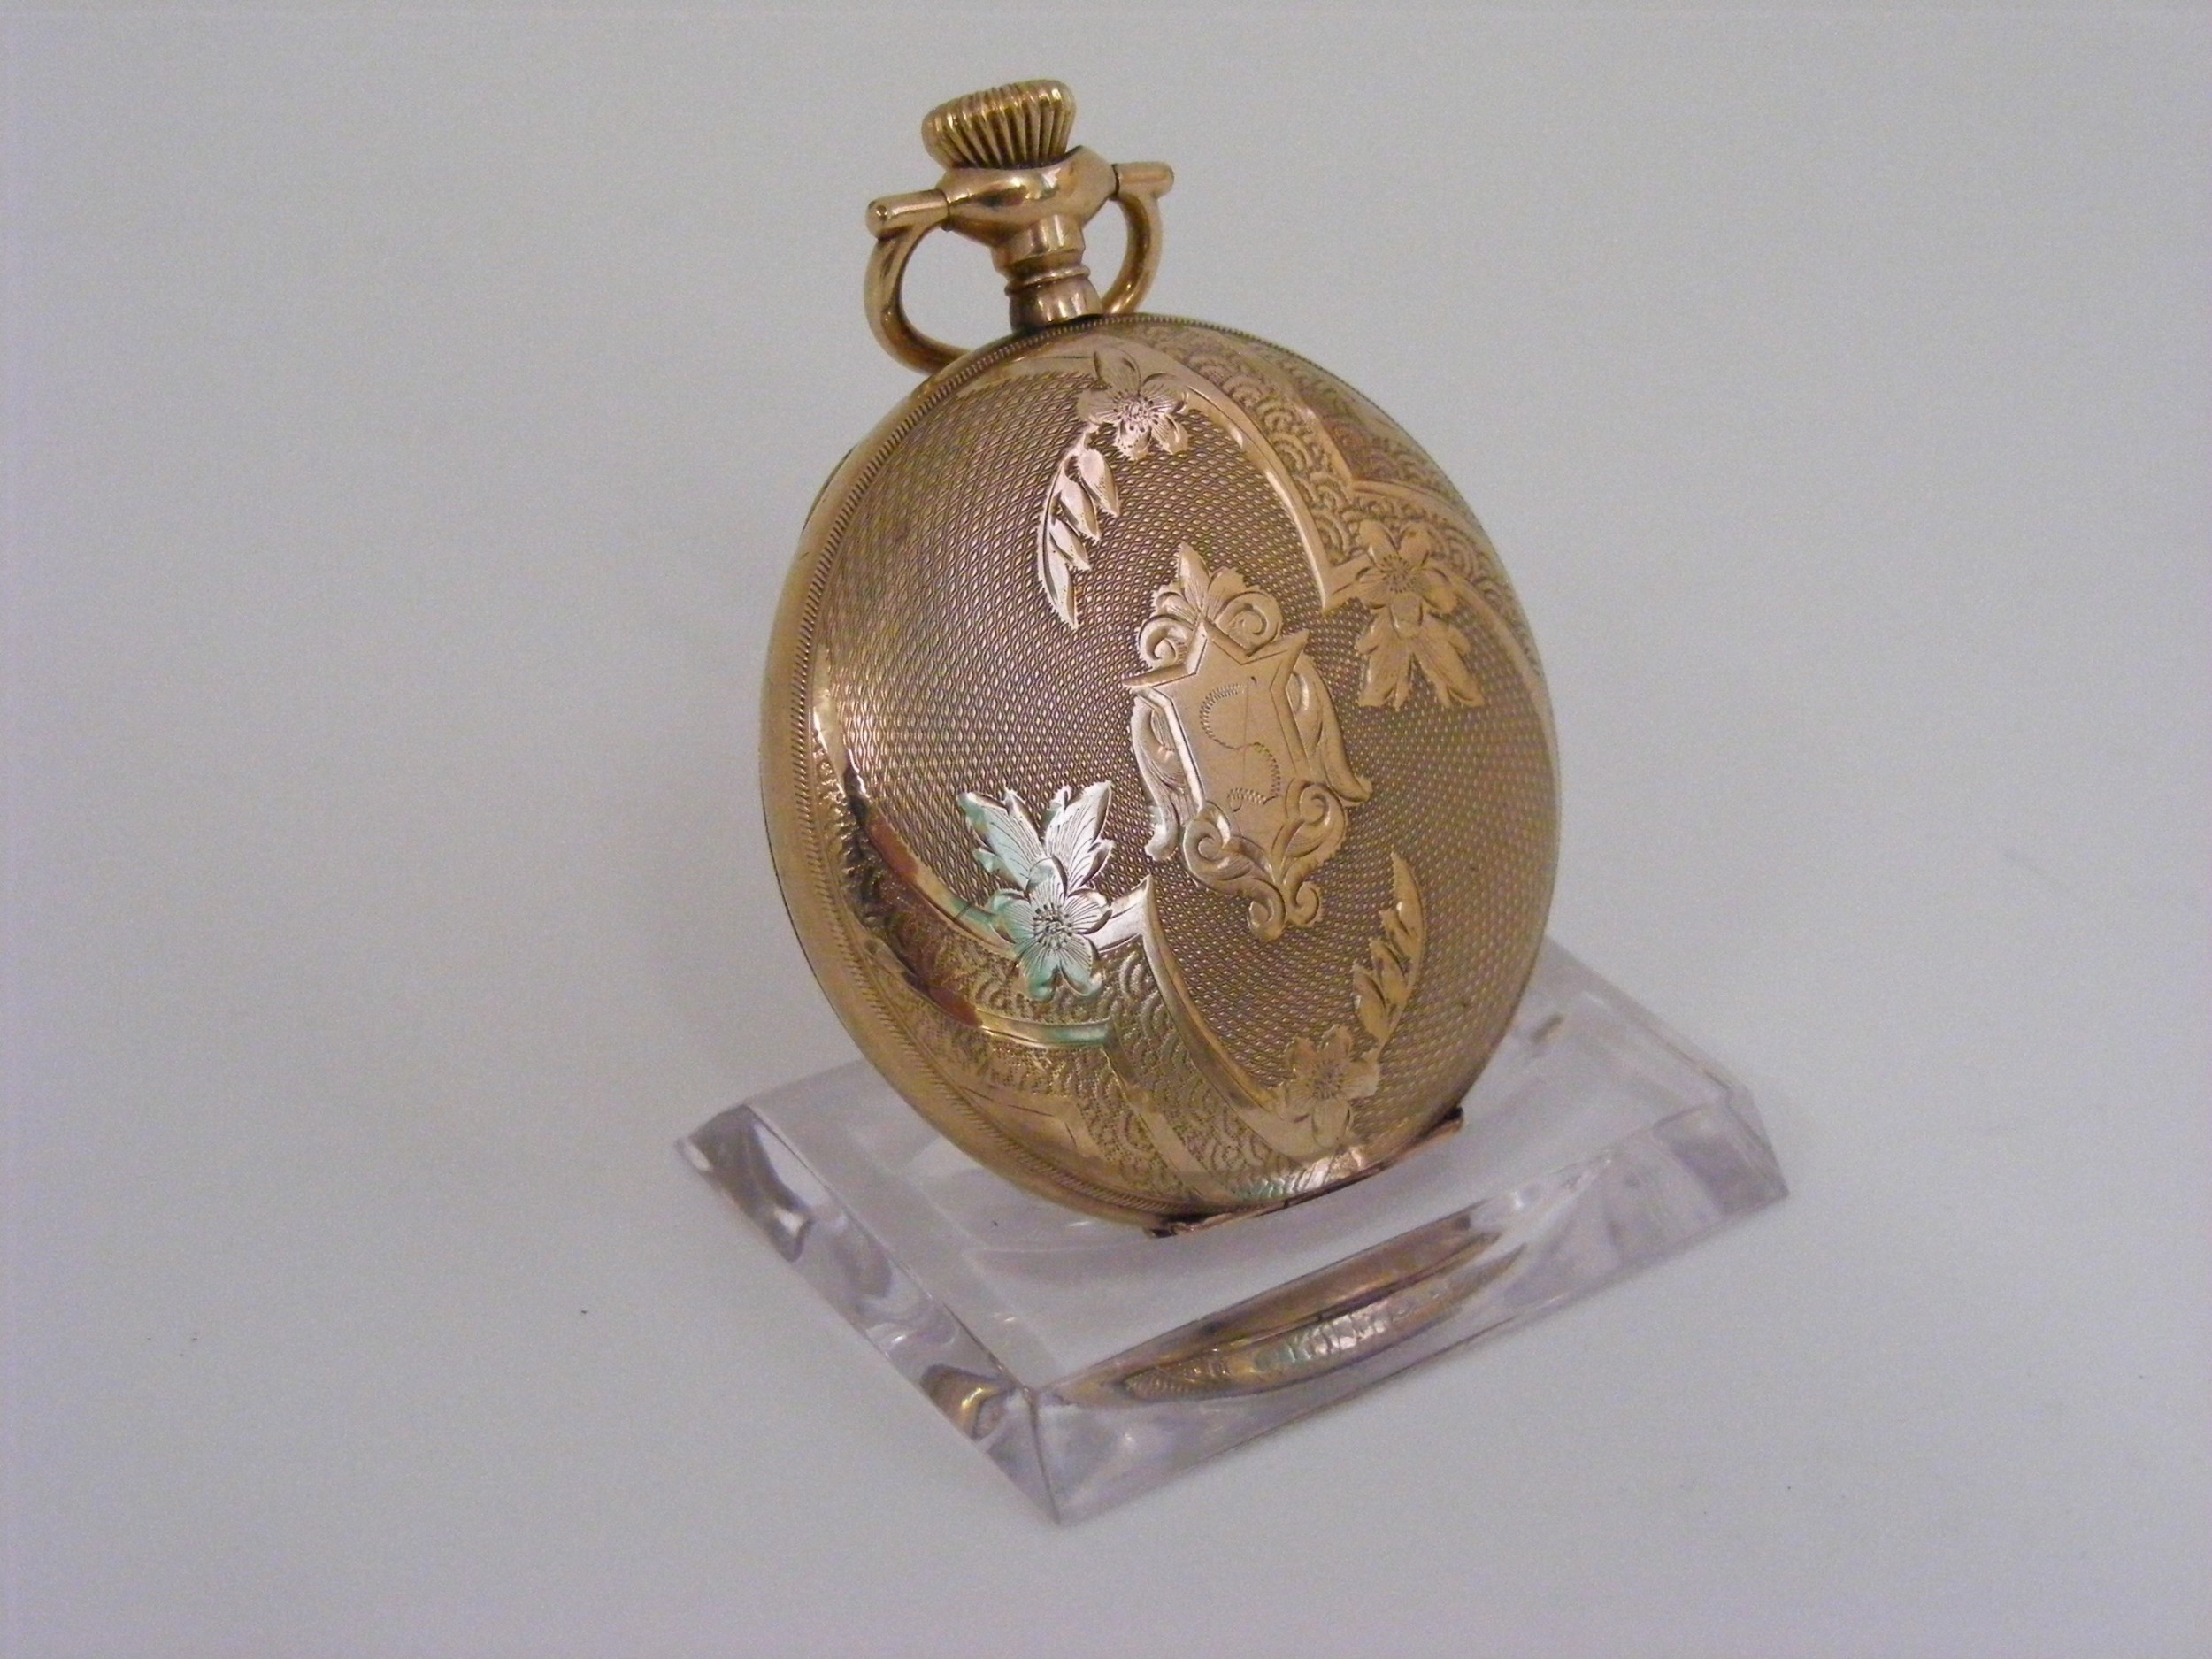 waltham gold filled hunting case pocket watch size 12s serviced warranted